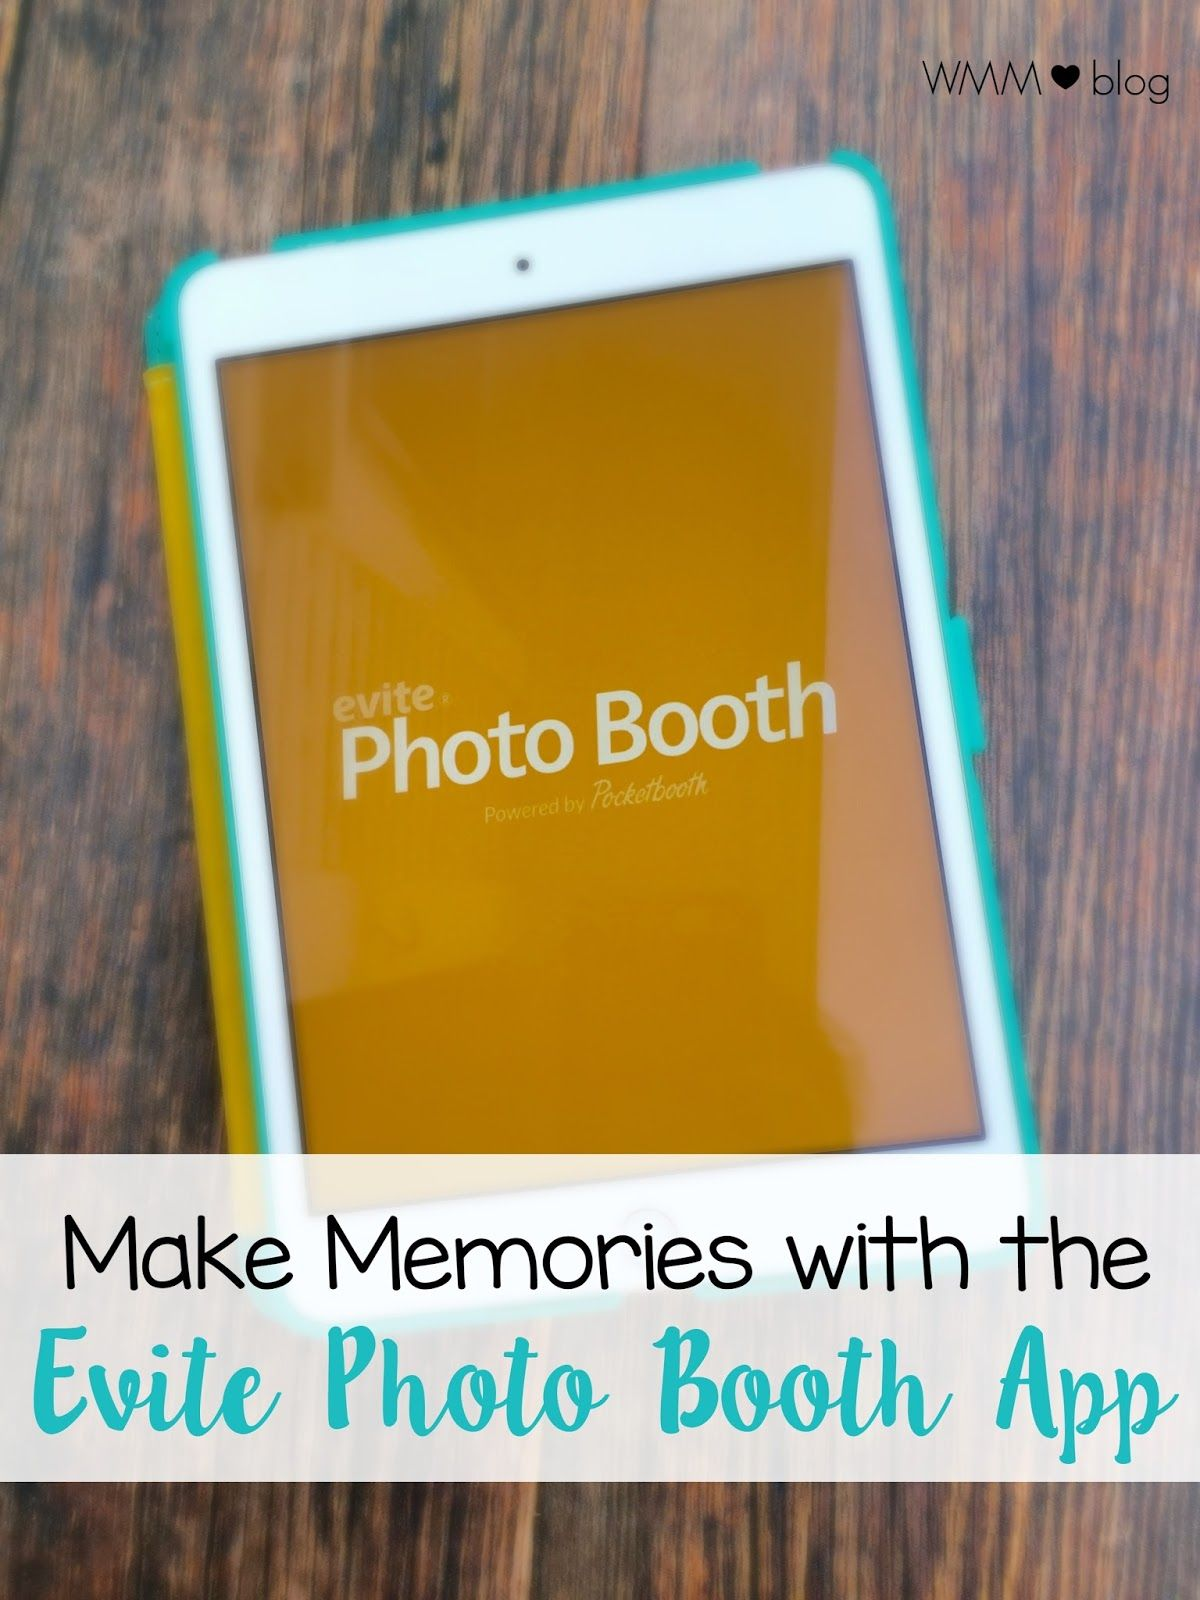 Make Memories with the Evite Photo Booth App Photo booth